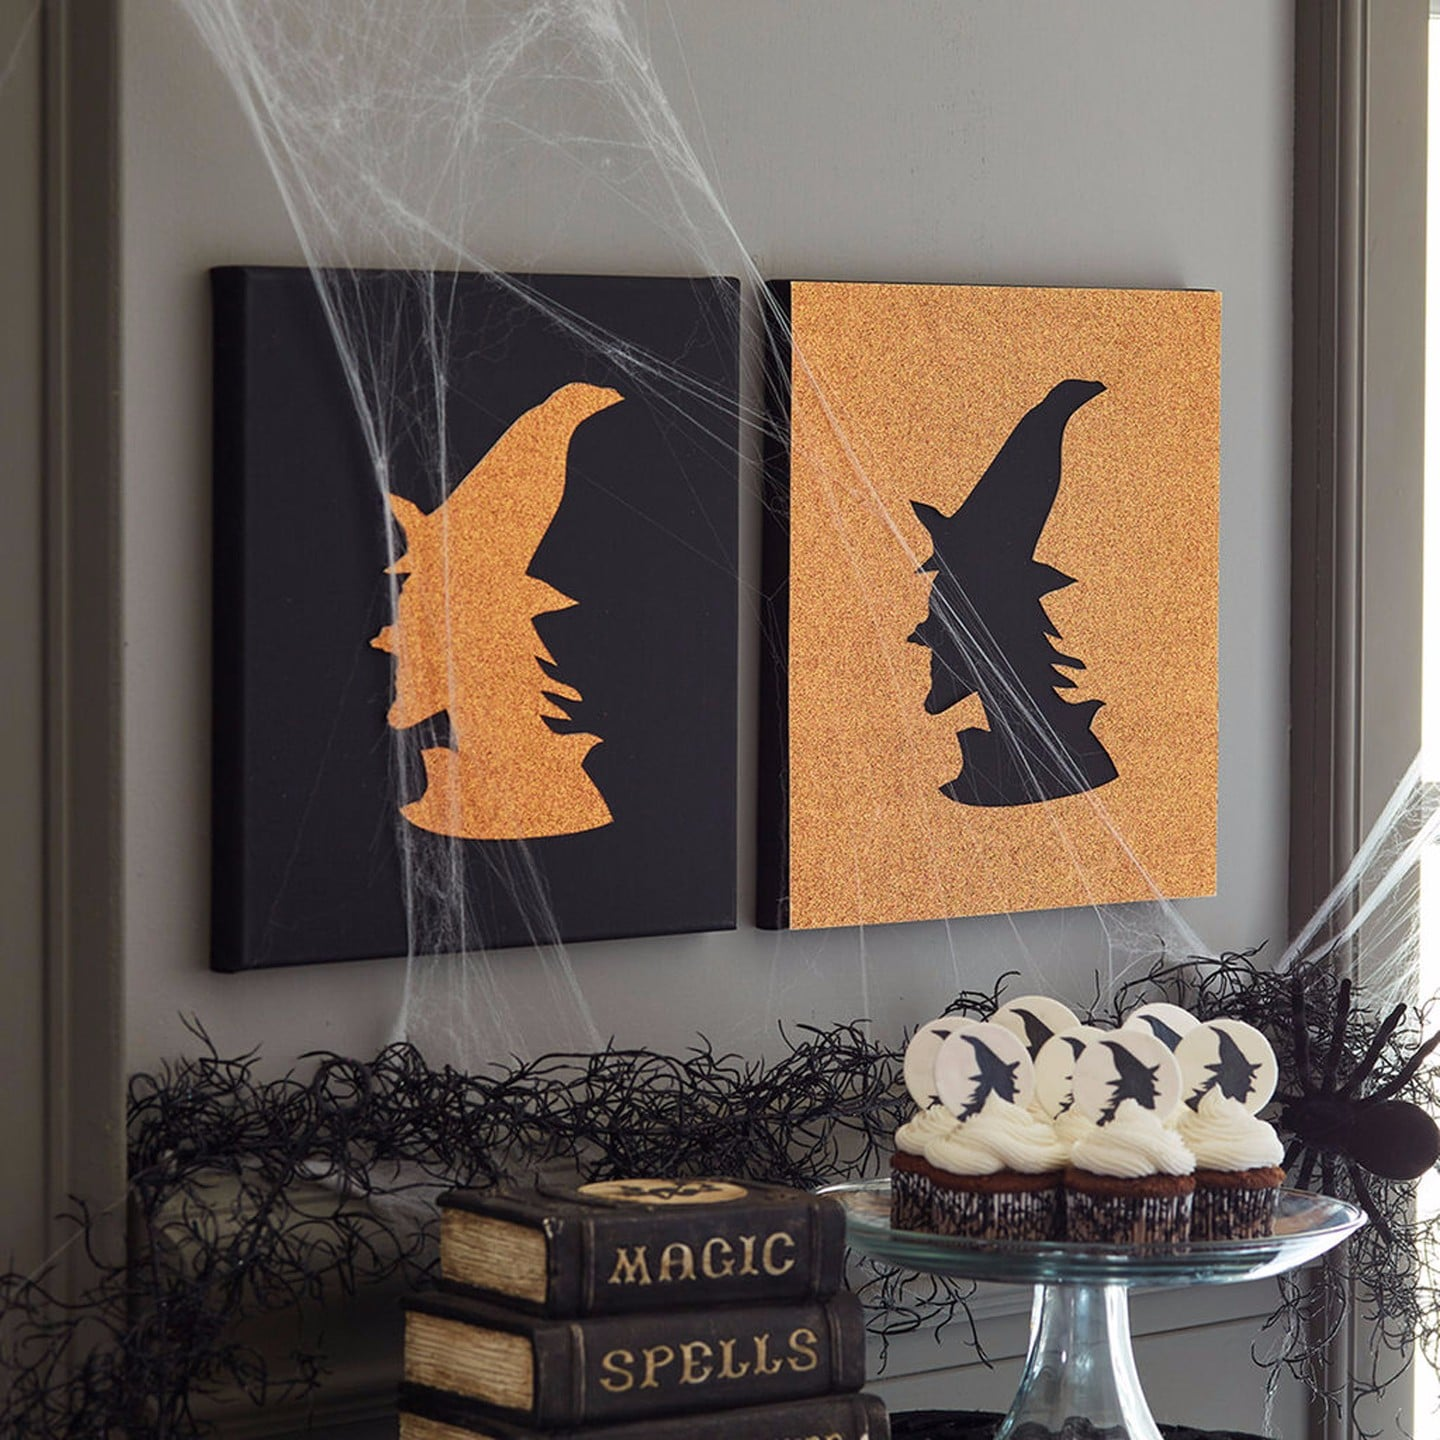 michaels halloween decorations 2017 popsugar smart living - Pictures Of Halloween Decorations